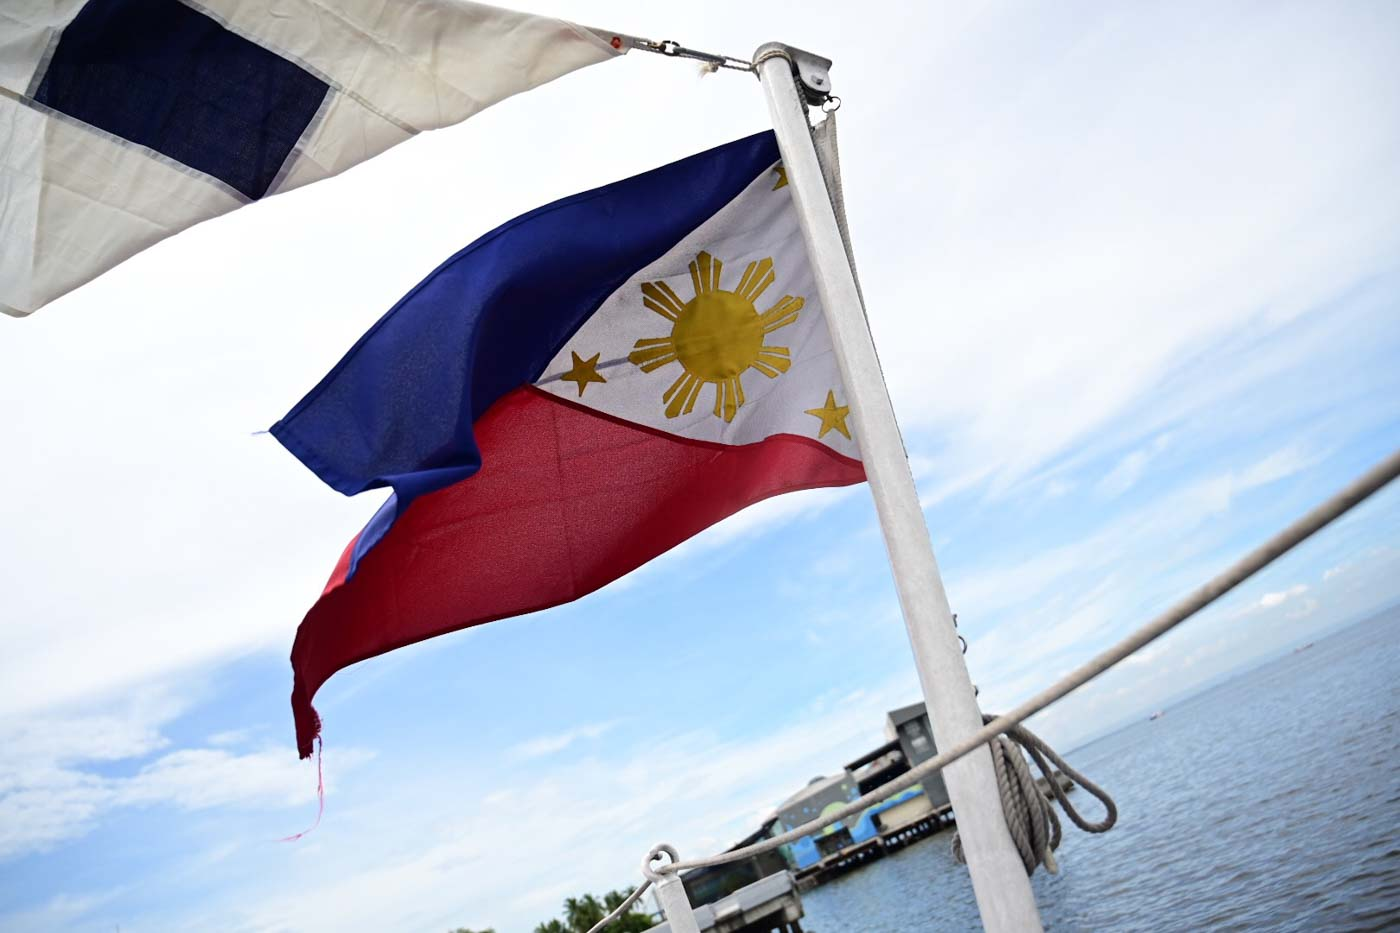 LUNETA PARK, MANILA. The Philippine Coast Guard holds an open house at the South Harbor, showcasing the new motor boats and jet skis on Independence Day, June 12, 2019. Photo by Alecs Ongcal/Rappler